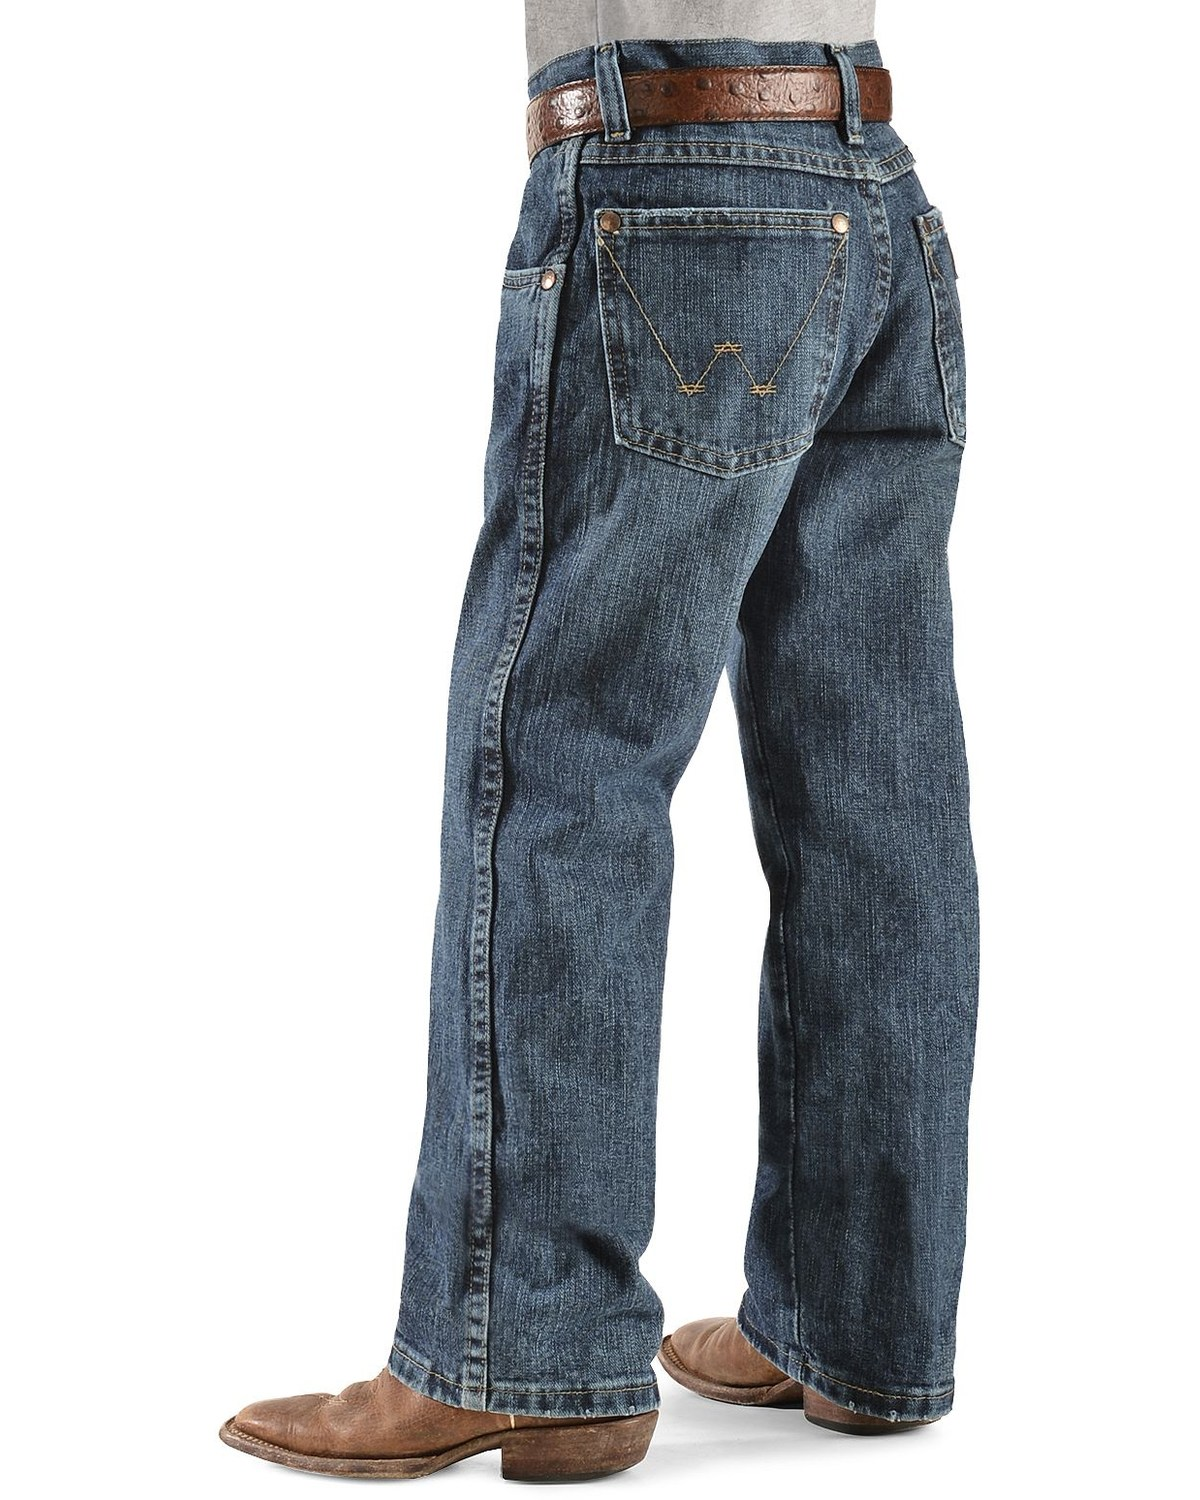 Boys Straight Leg Jeans at Gymboree. GYMBOREE REWARDS. Get in on the good stuff. Returns Ship Free. We want you to be % happy. GYMBUCKS. Stash now, cash in later. See More Ways to Shop. Close. Enter a search term above. Menu. Stores. Ship to: We ship internationally.